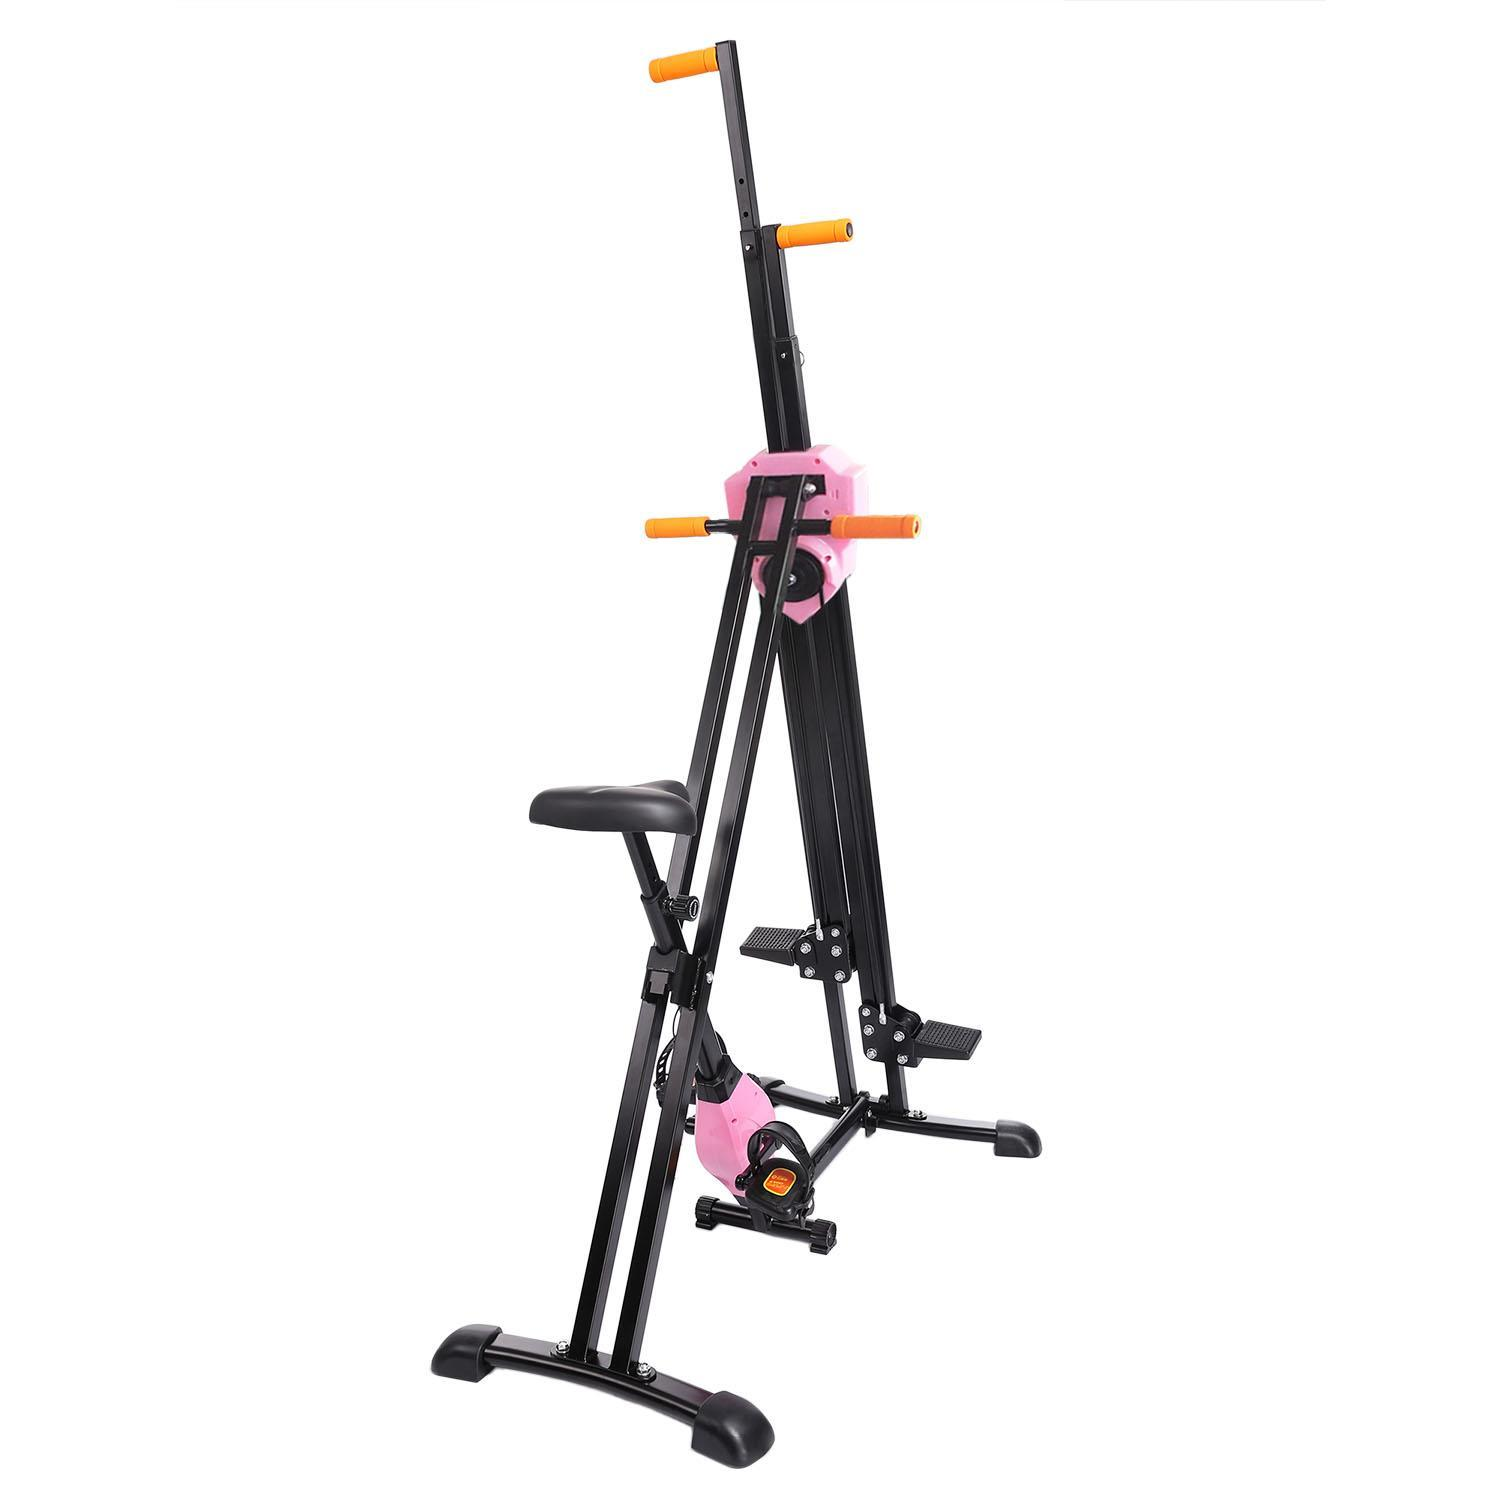 Vertical Climber Gym Exercise Fitness Machine Stepper Cardio Workout Training non-stick grips Legs Arms Abs Calf 3